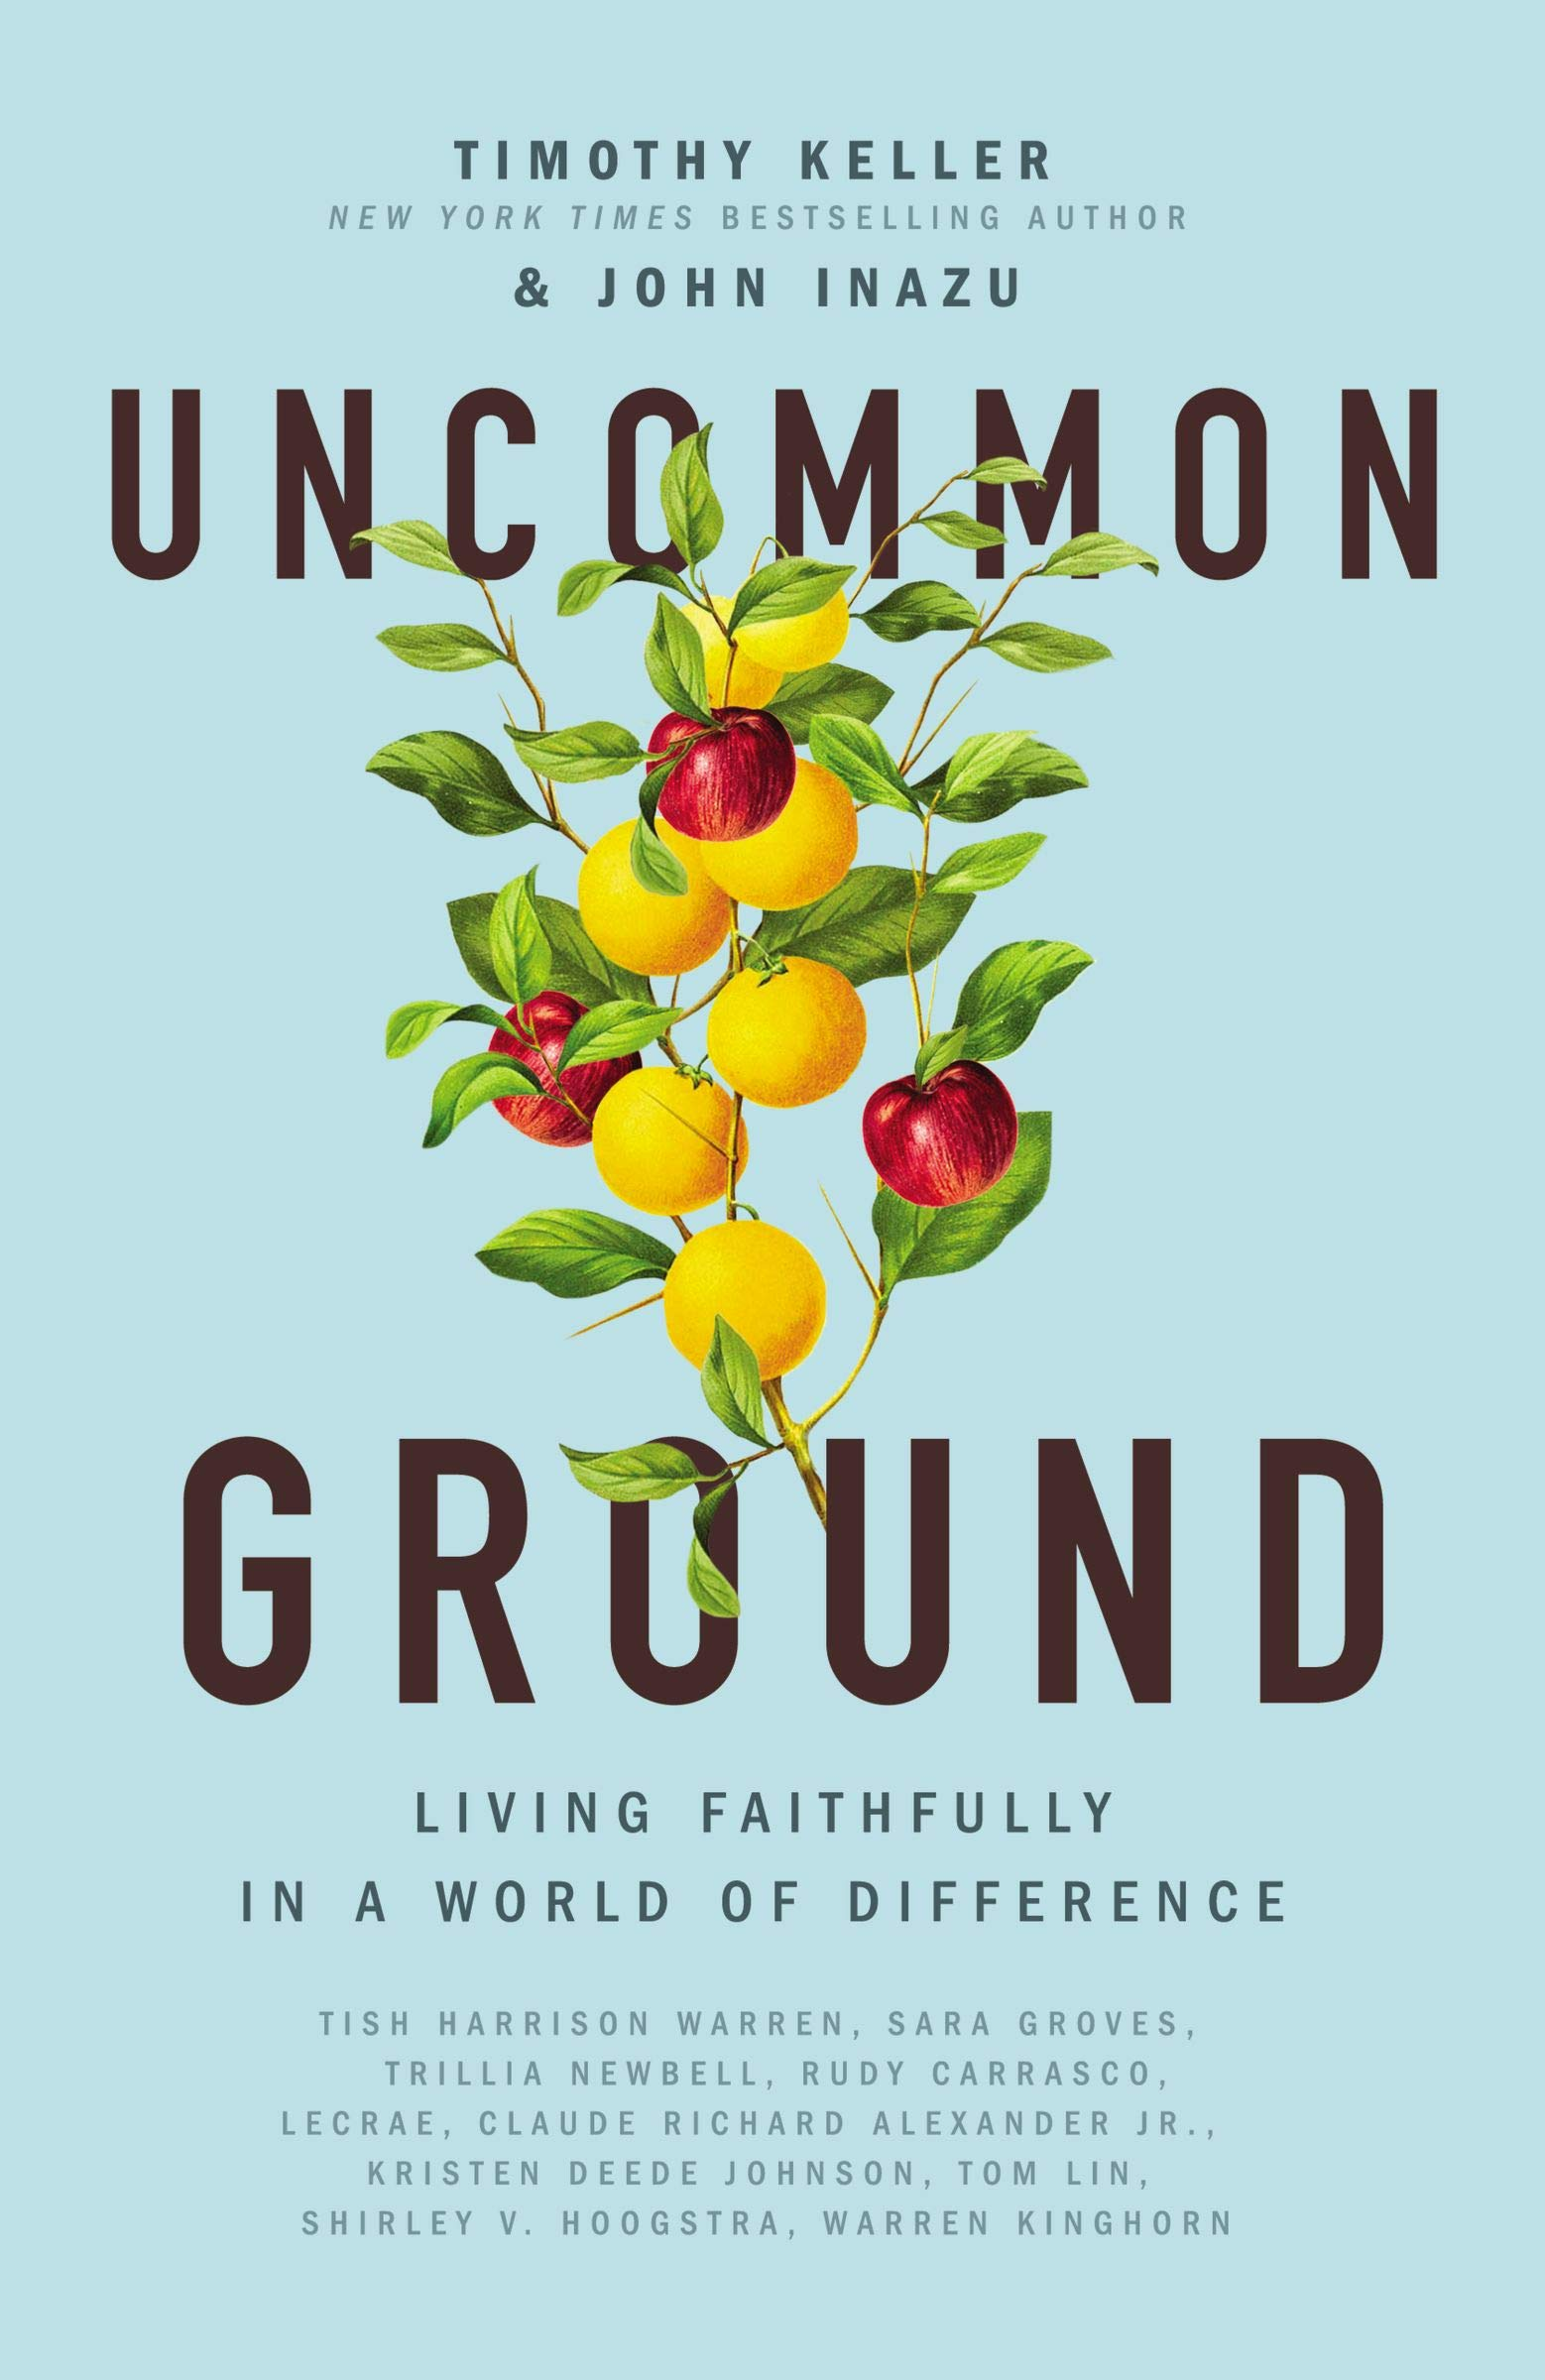 Uncommon Ground: Living Faithfully in a World of Difference: Keller,  Timothy, Inazu, John: 9781400219605: Amazon.com: Books